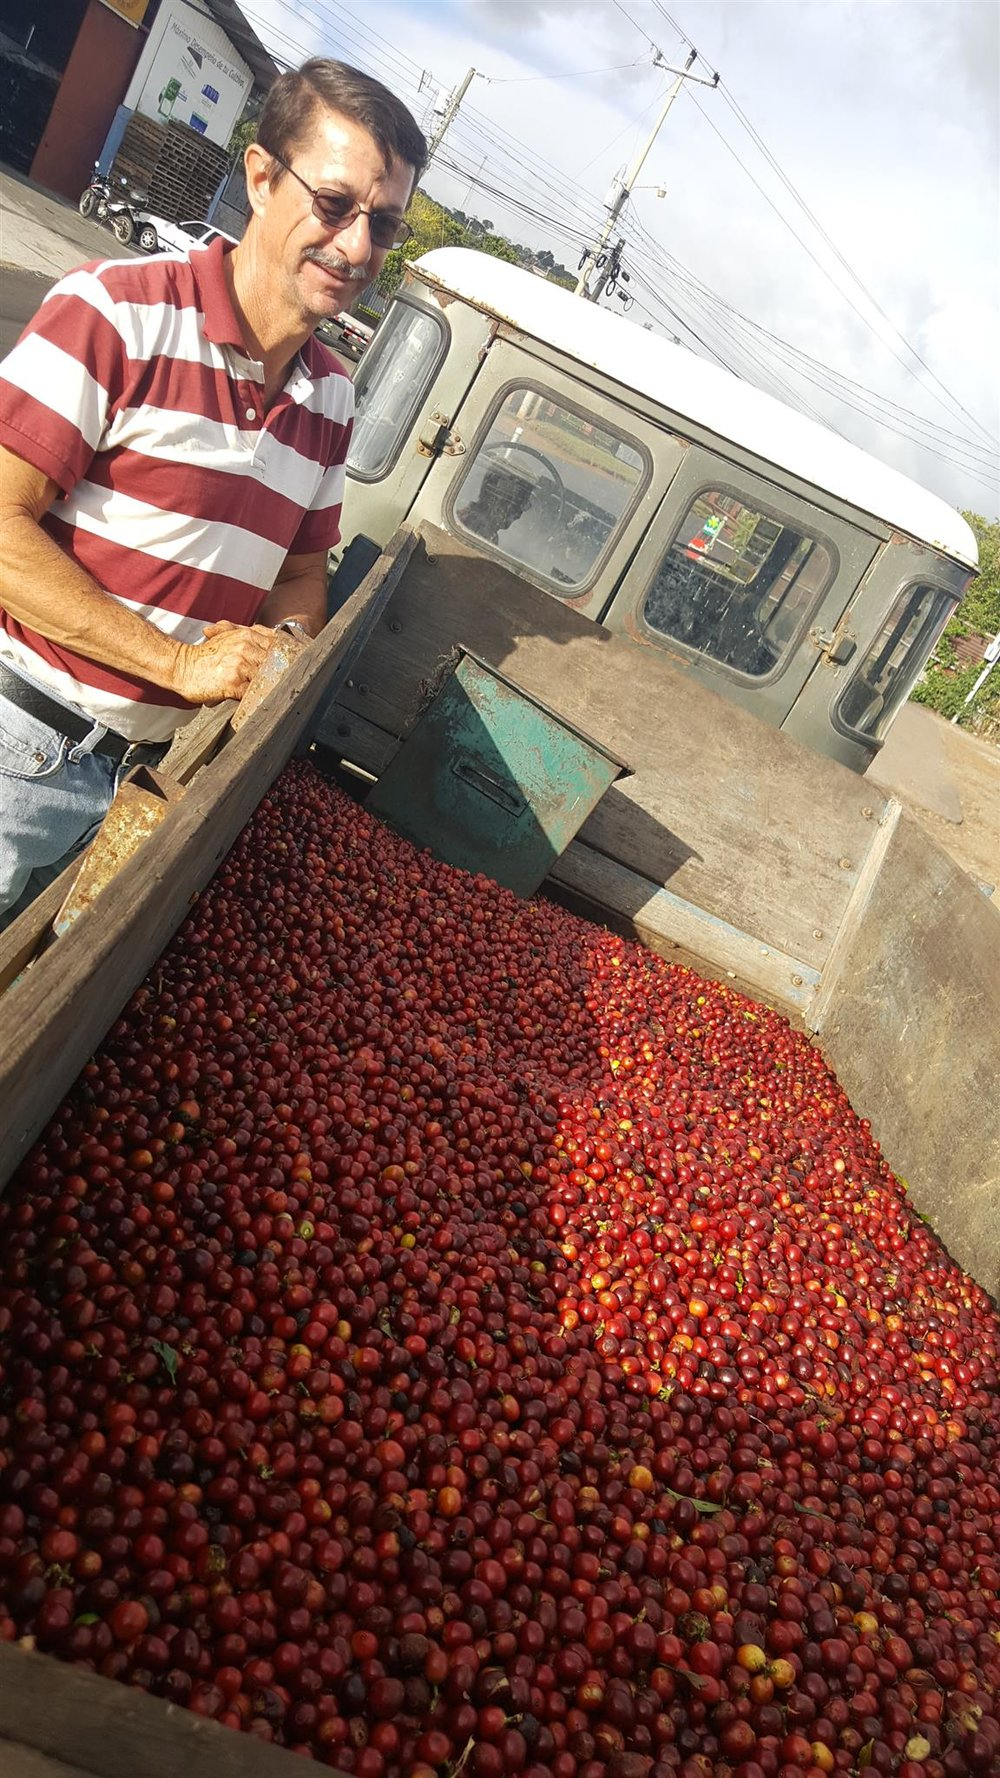 cherry delivery at the mill.jpg